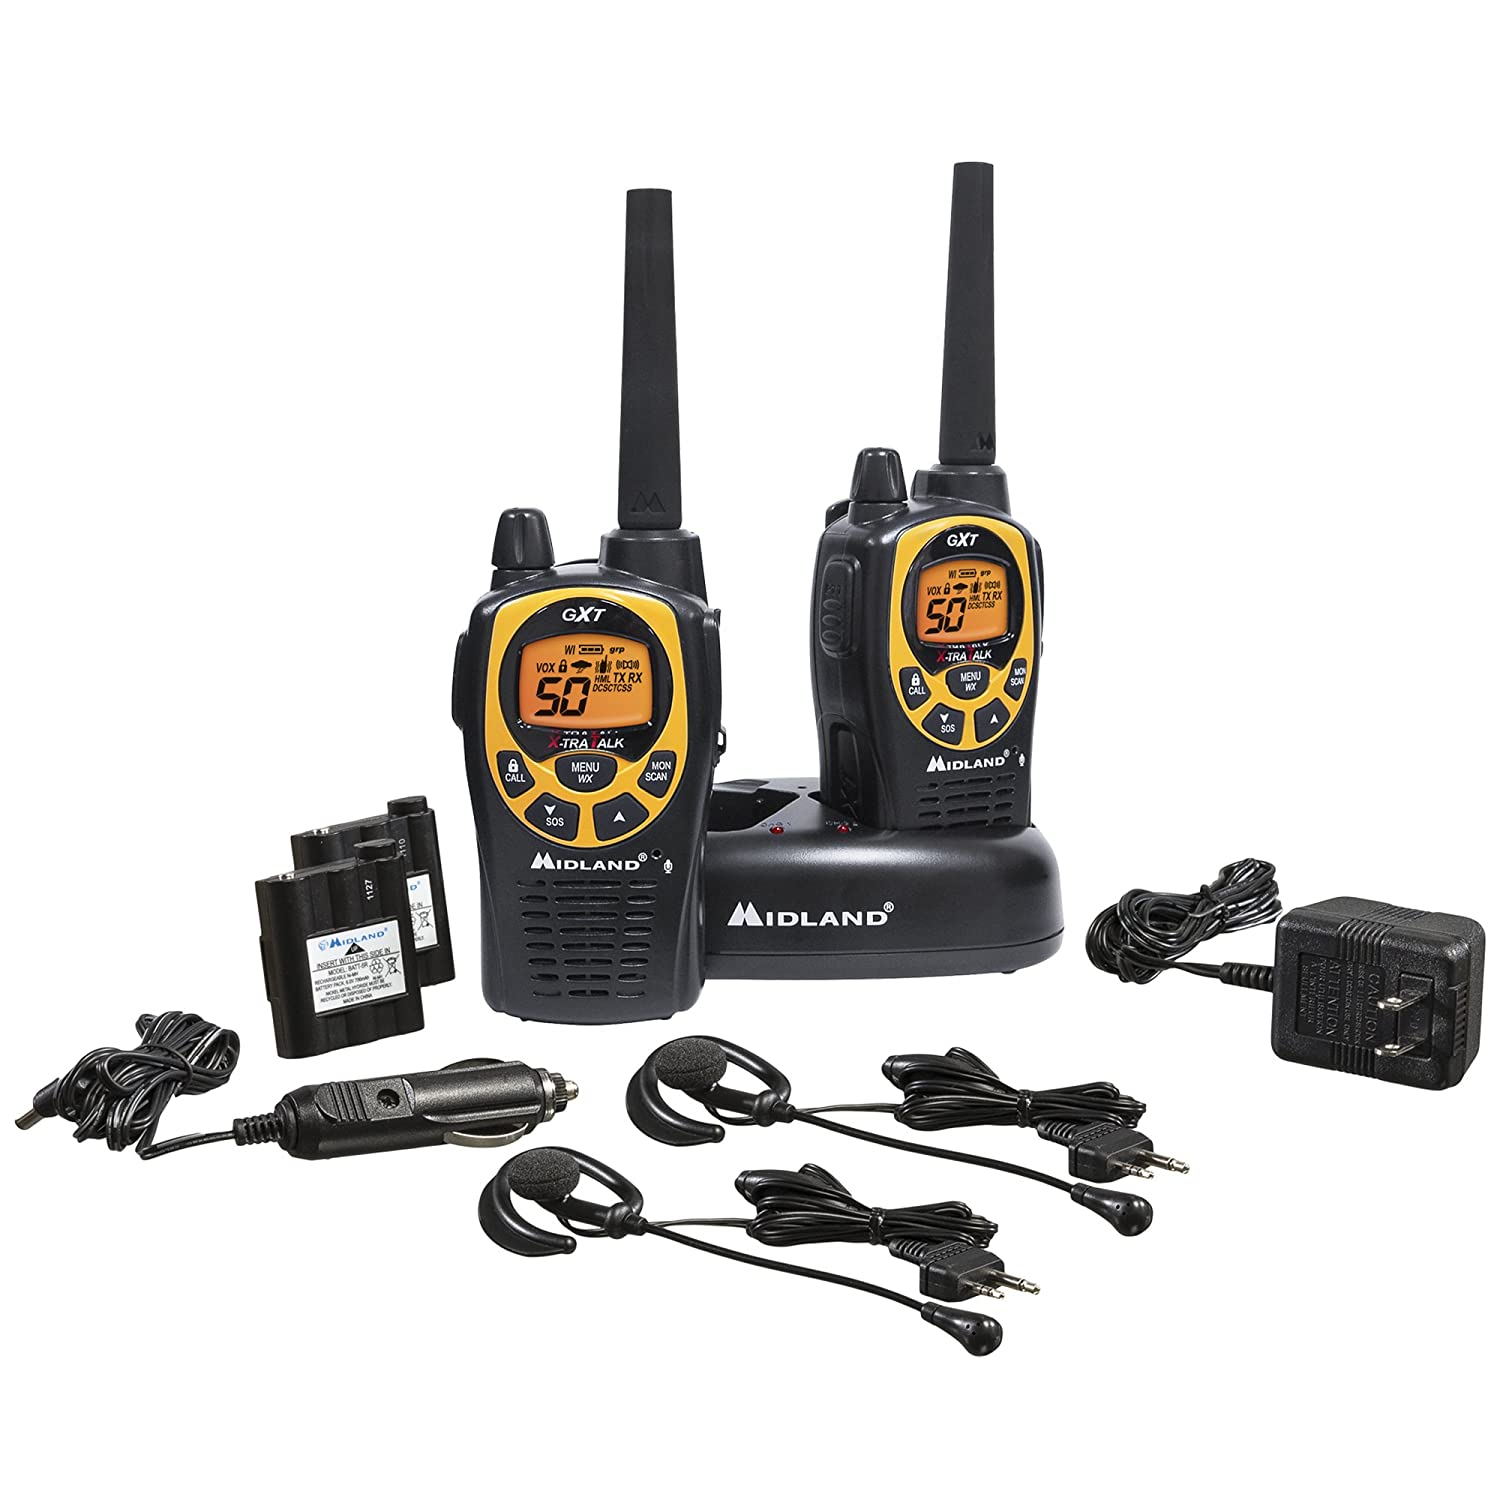 #1: Midland GXT1000VP4 36-Mile 50-Channel FRS/GMRS Two-Way Radio